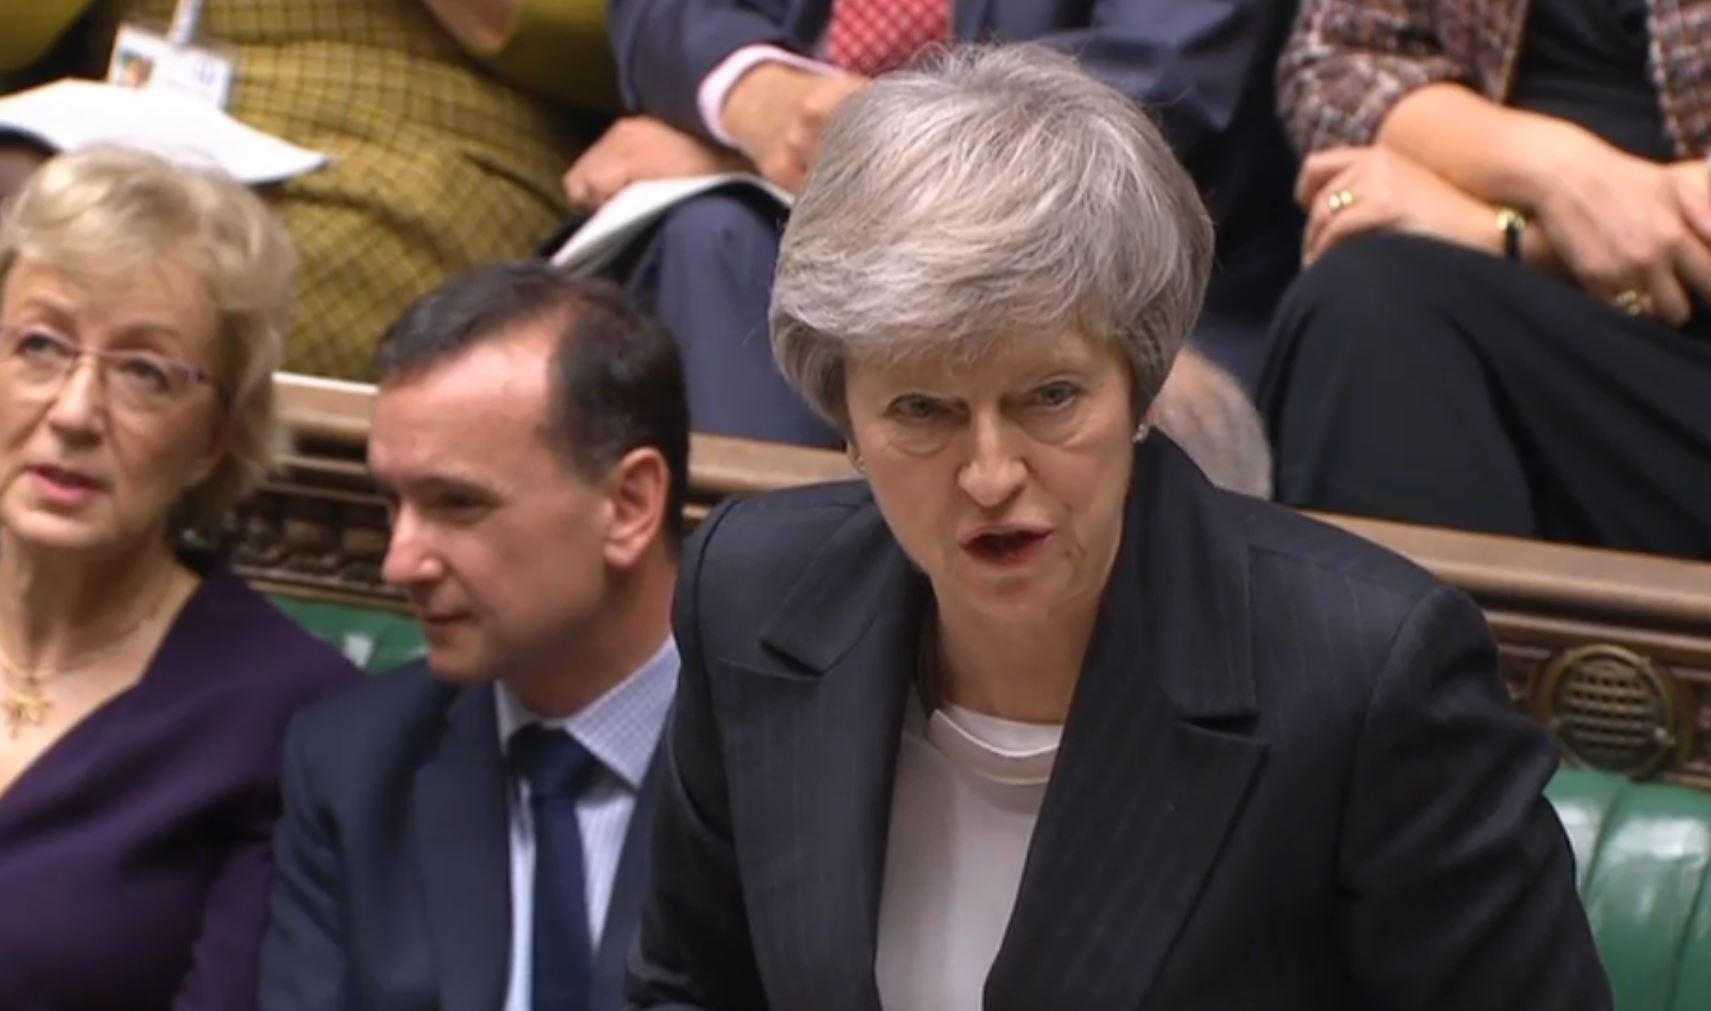 Prime Minister Theresa May speaks during Prime Minister's Questions in the House of Commons, London. PRESS ASSOCIATION Photo. Picture date: Wednesday December 5, 2018. Photo credit should read: PA Wire